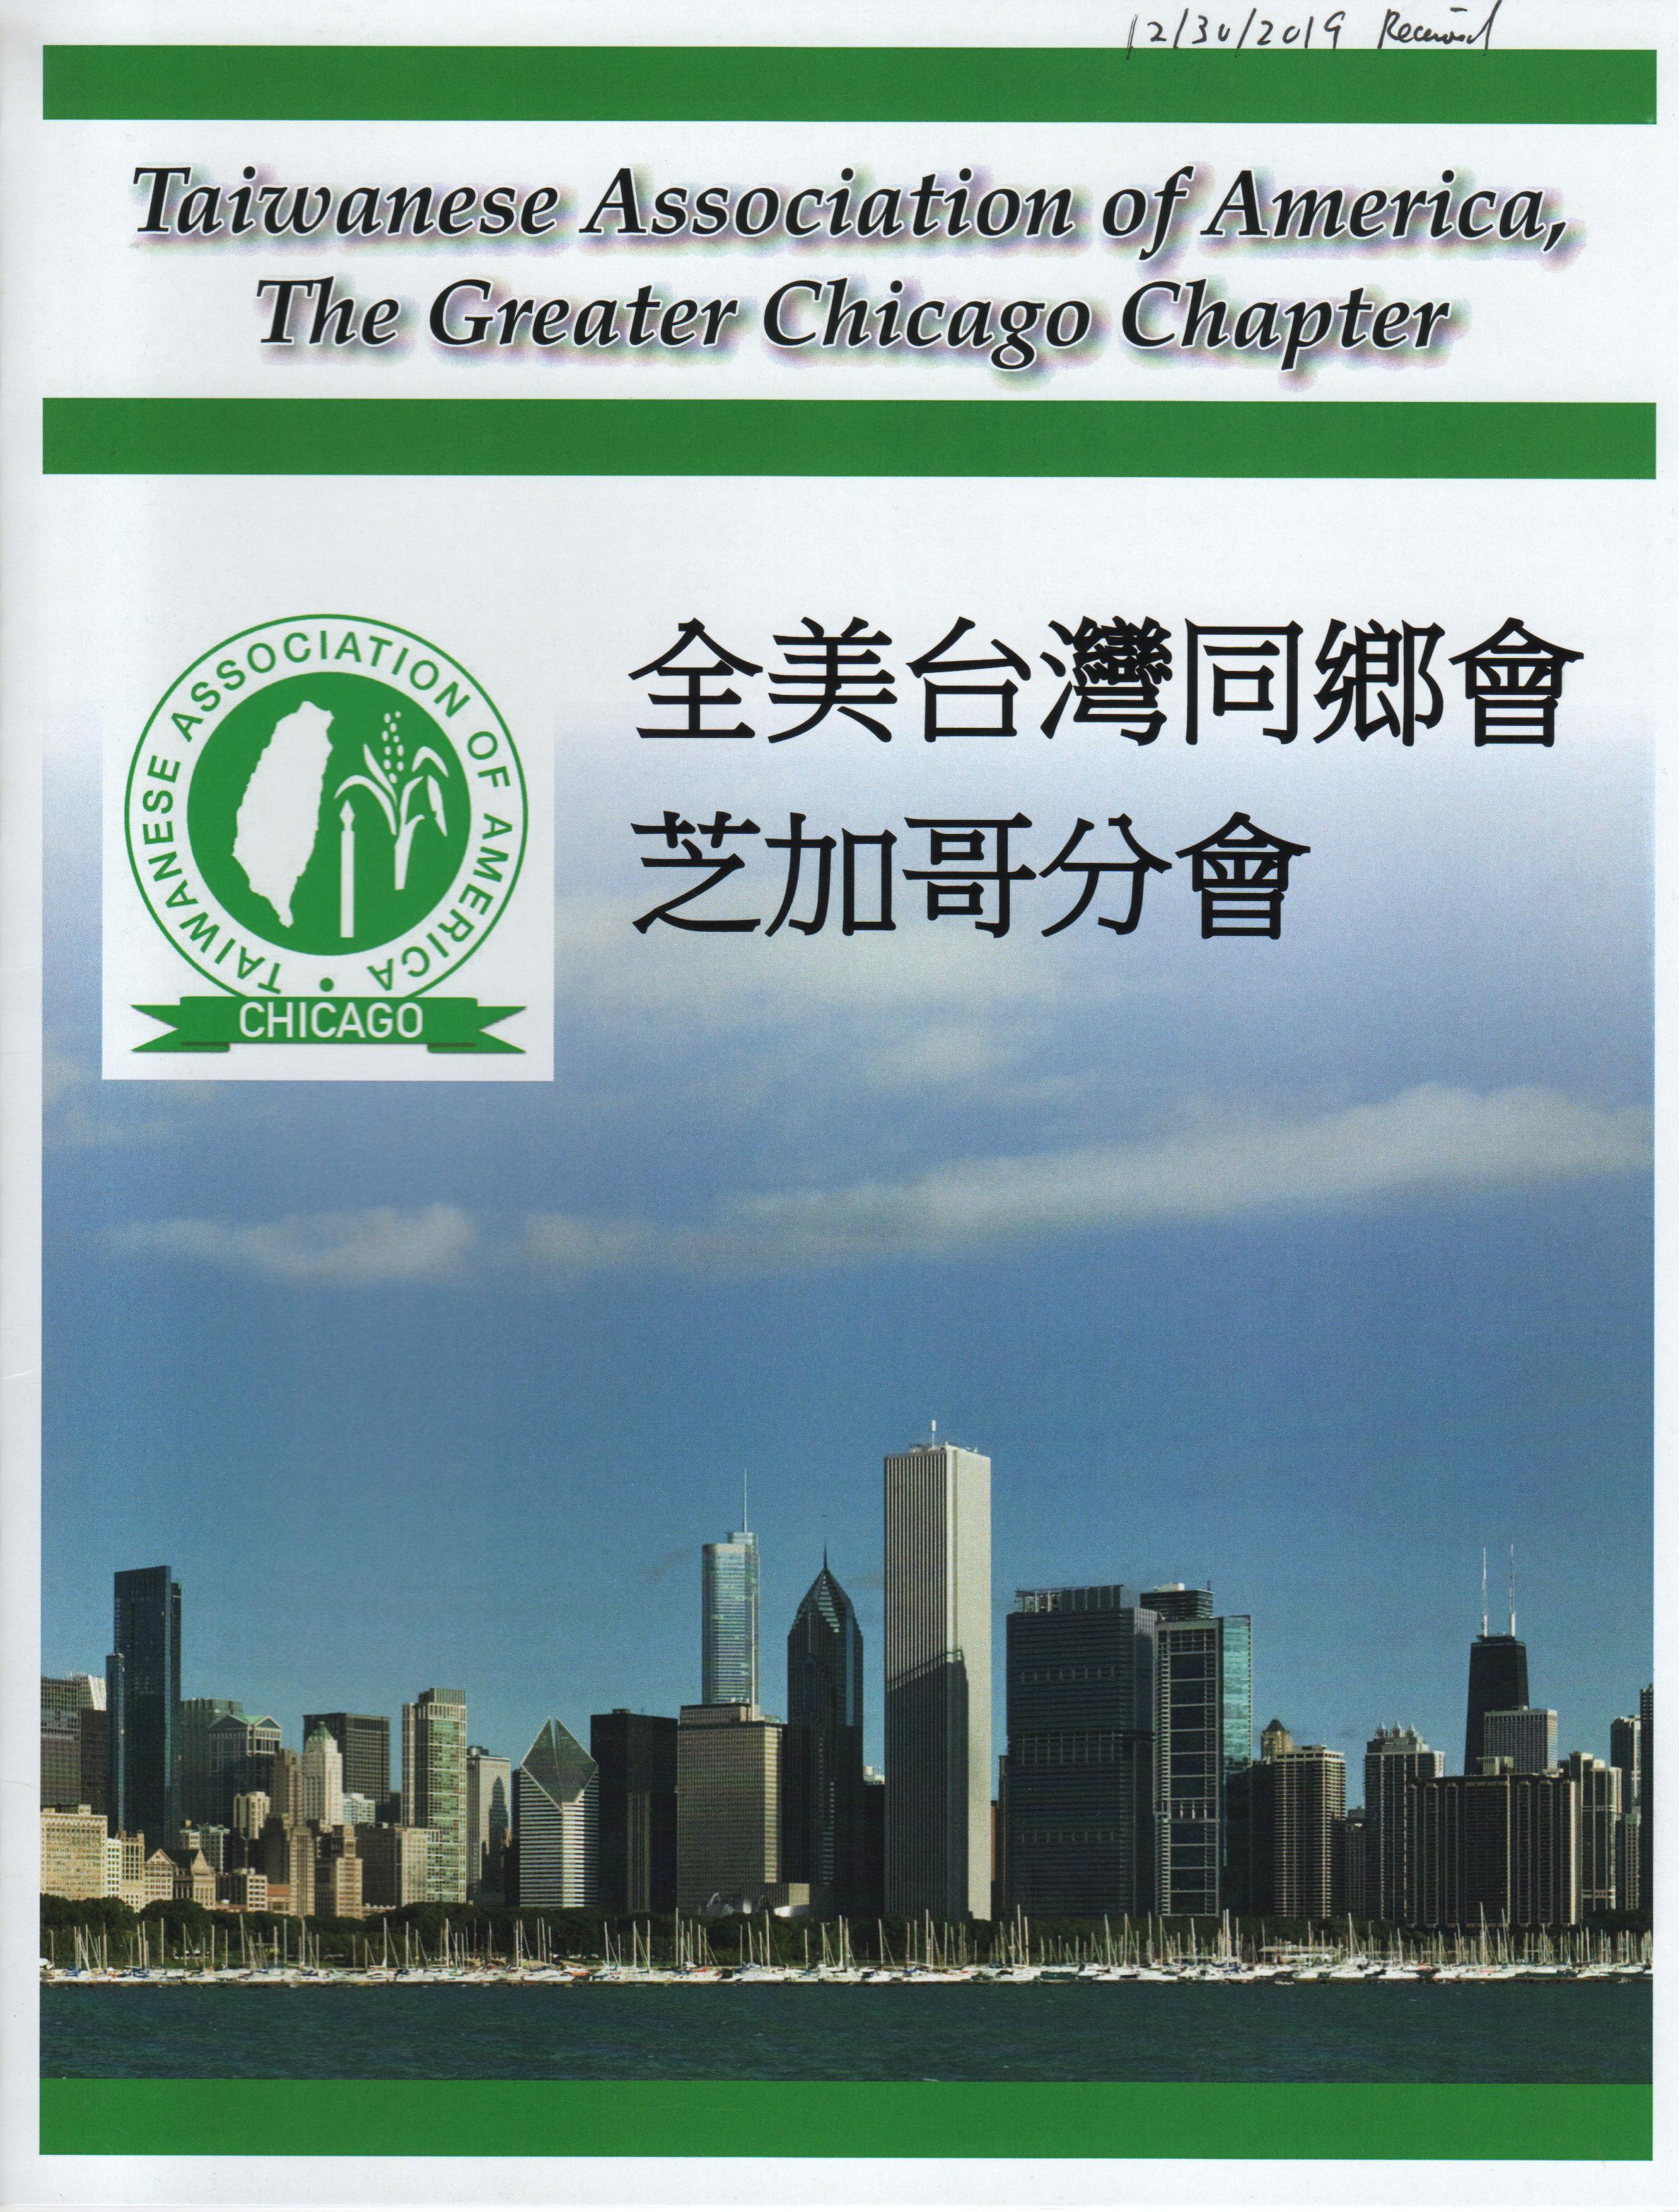 1331. Member Directory of Taiwanese Association of America, The Greater Chicago Chapter 全美台灣同鄉會芝加哥分會 / TAA-Chicago /12/2019/Magazines/雜誌